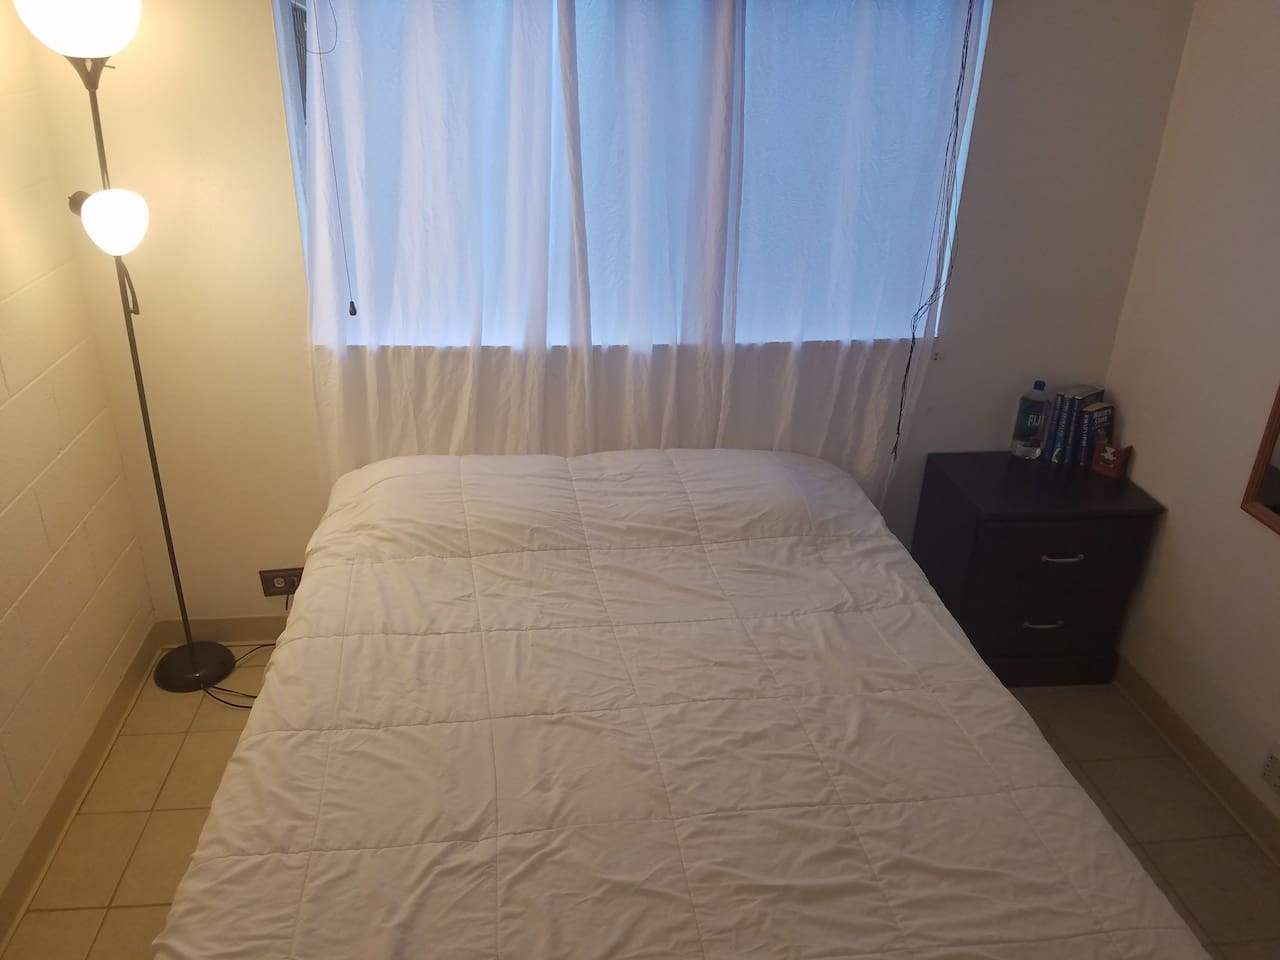 clean, cool and relaxing private room with queen size bed with freshly washed bedding